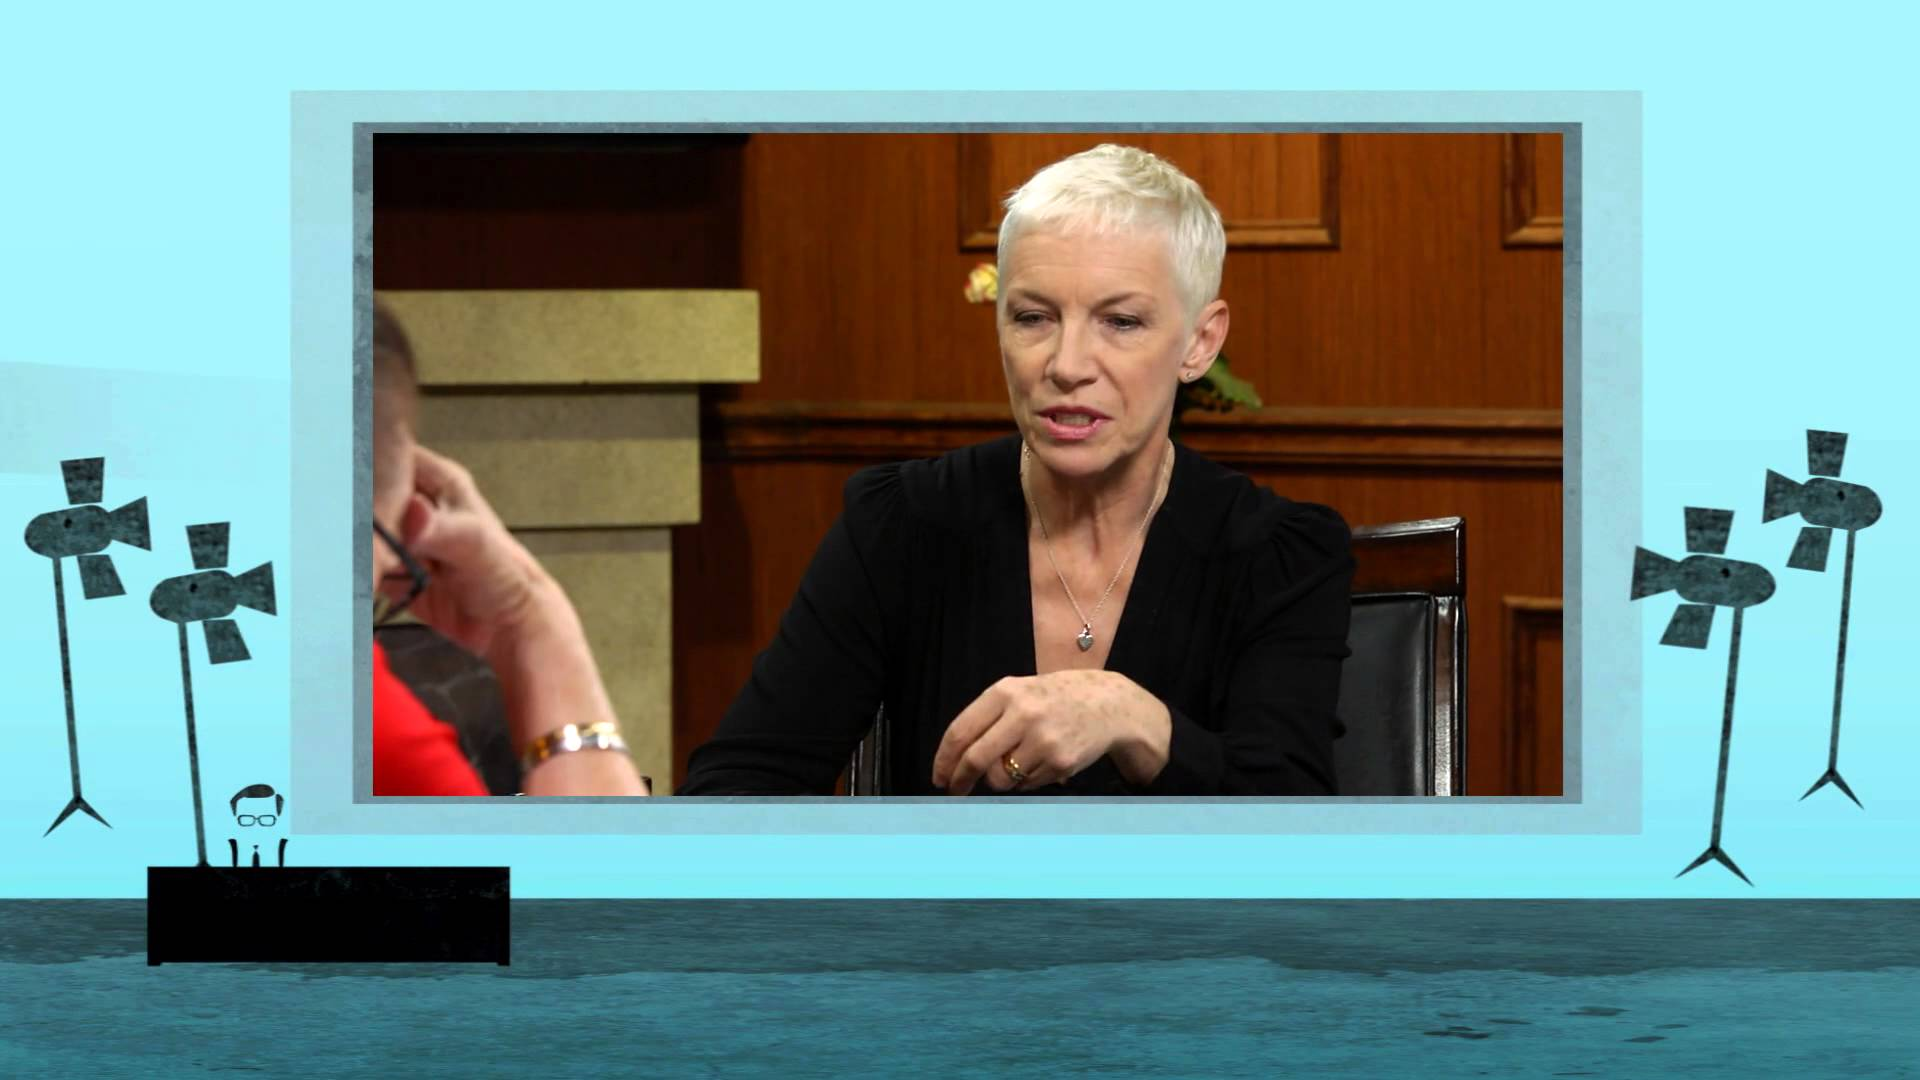 A sneak peak into Annie Lennox's interview with Larry King to be broadcast this evening.